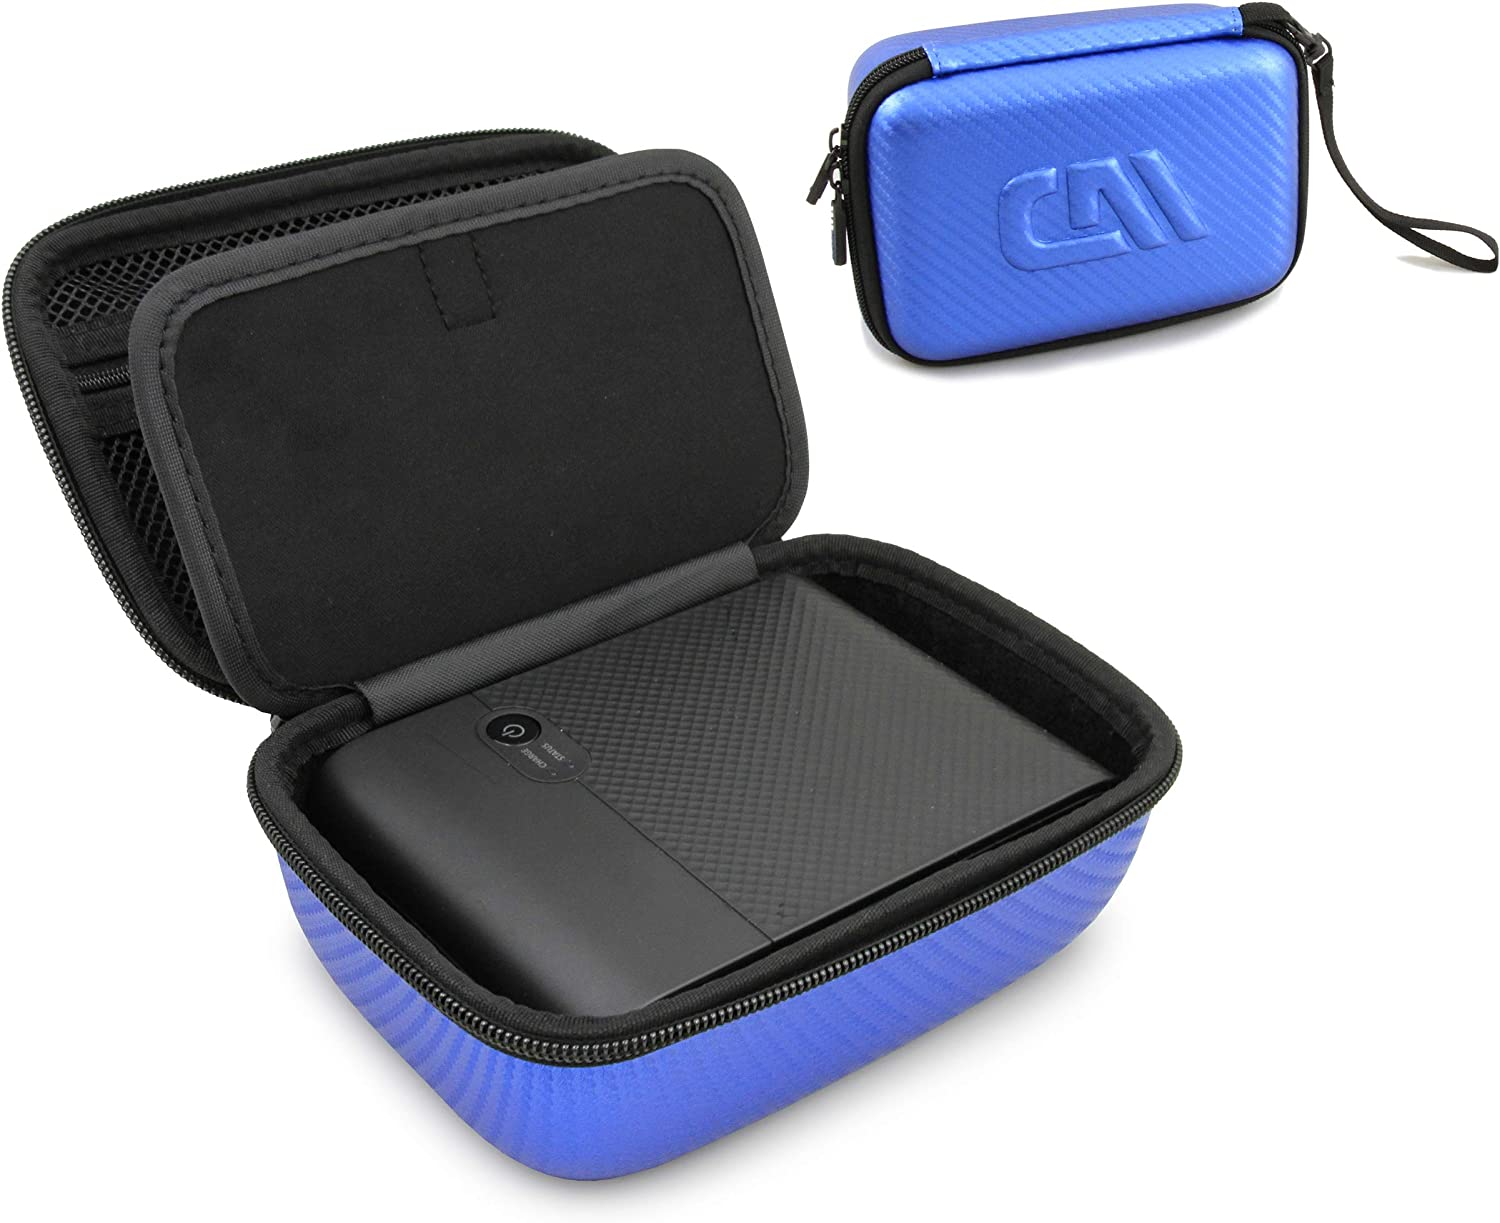 Casematix Carry Case Compatible with Canon Selphy Square QX10 Compact Photo Printer, Cables and Prints, Includes Blue Case Only